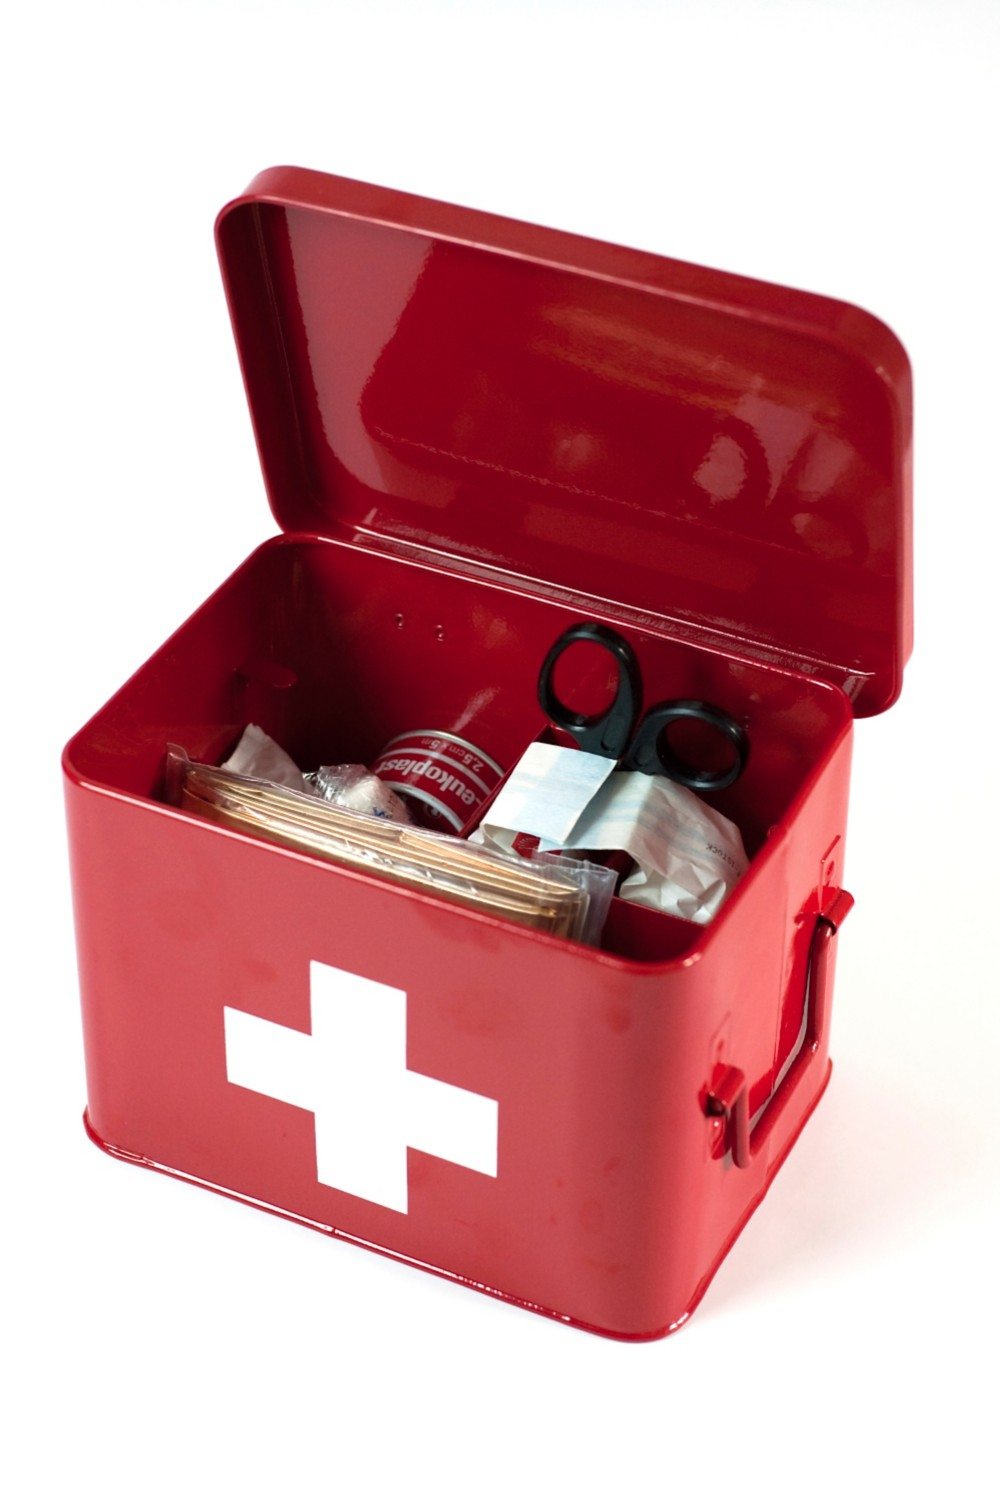 The first aid kit is an essential item in most emergency kits.